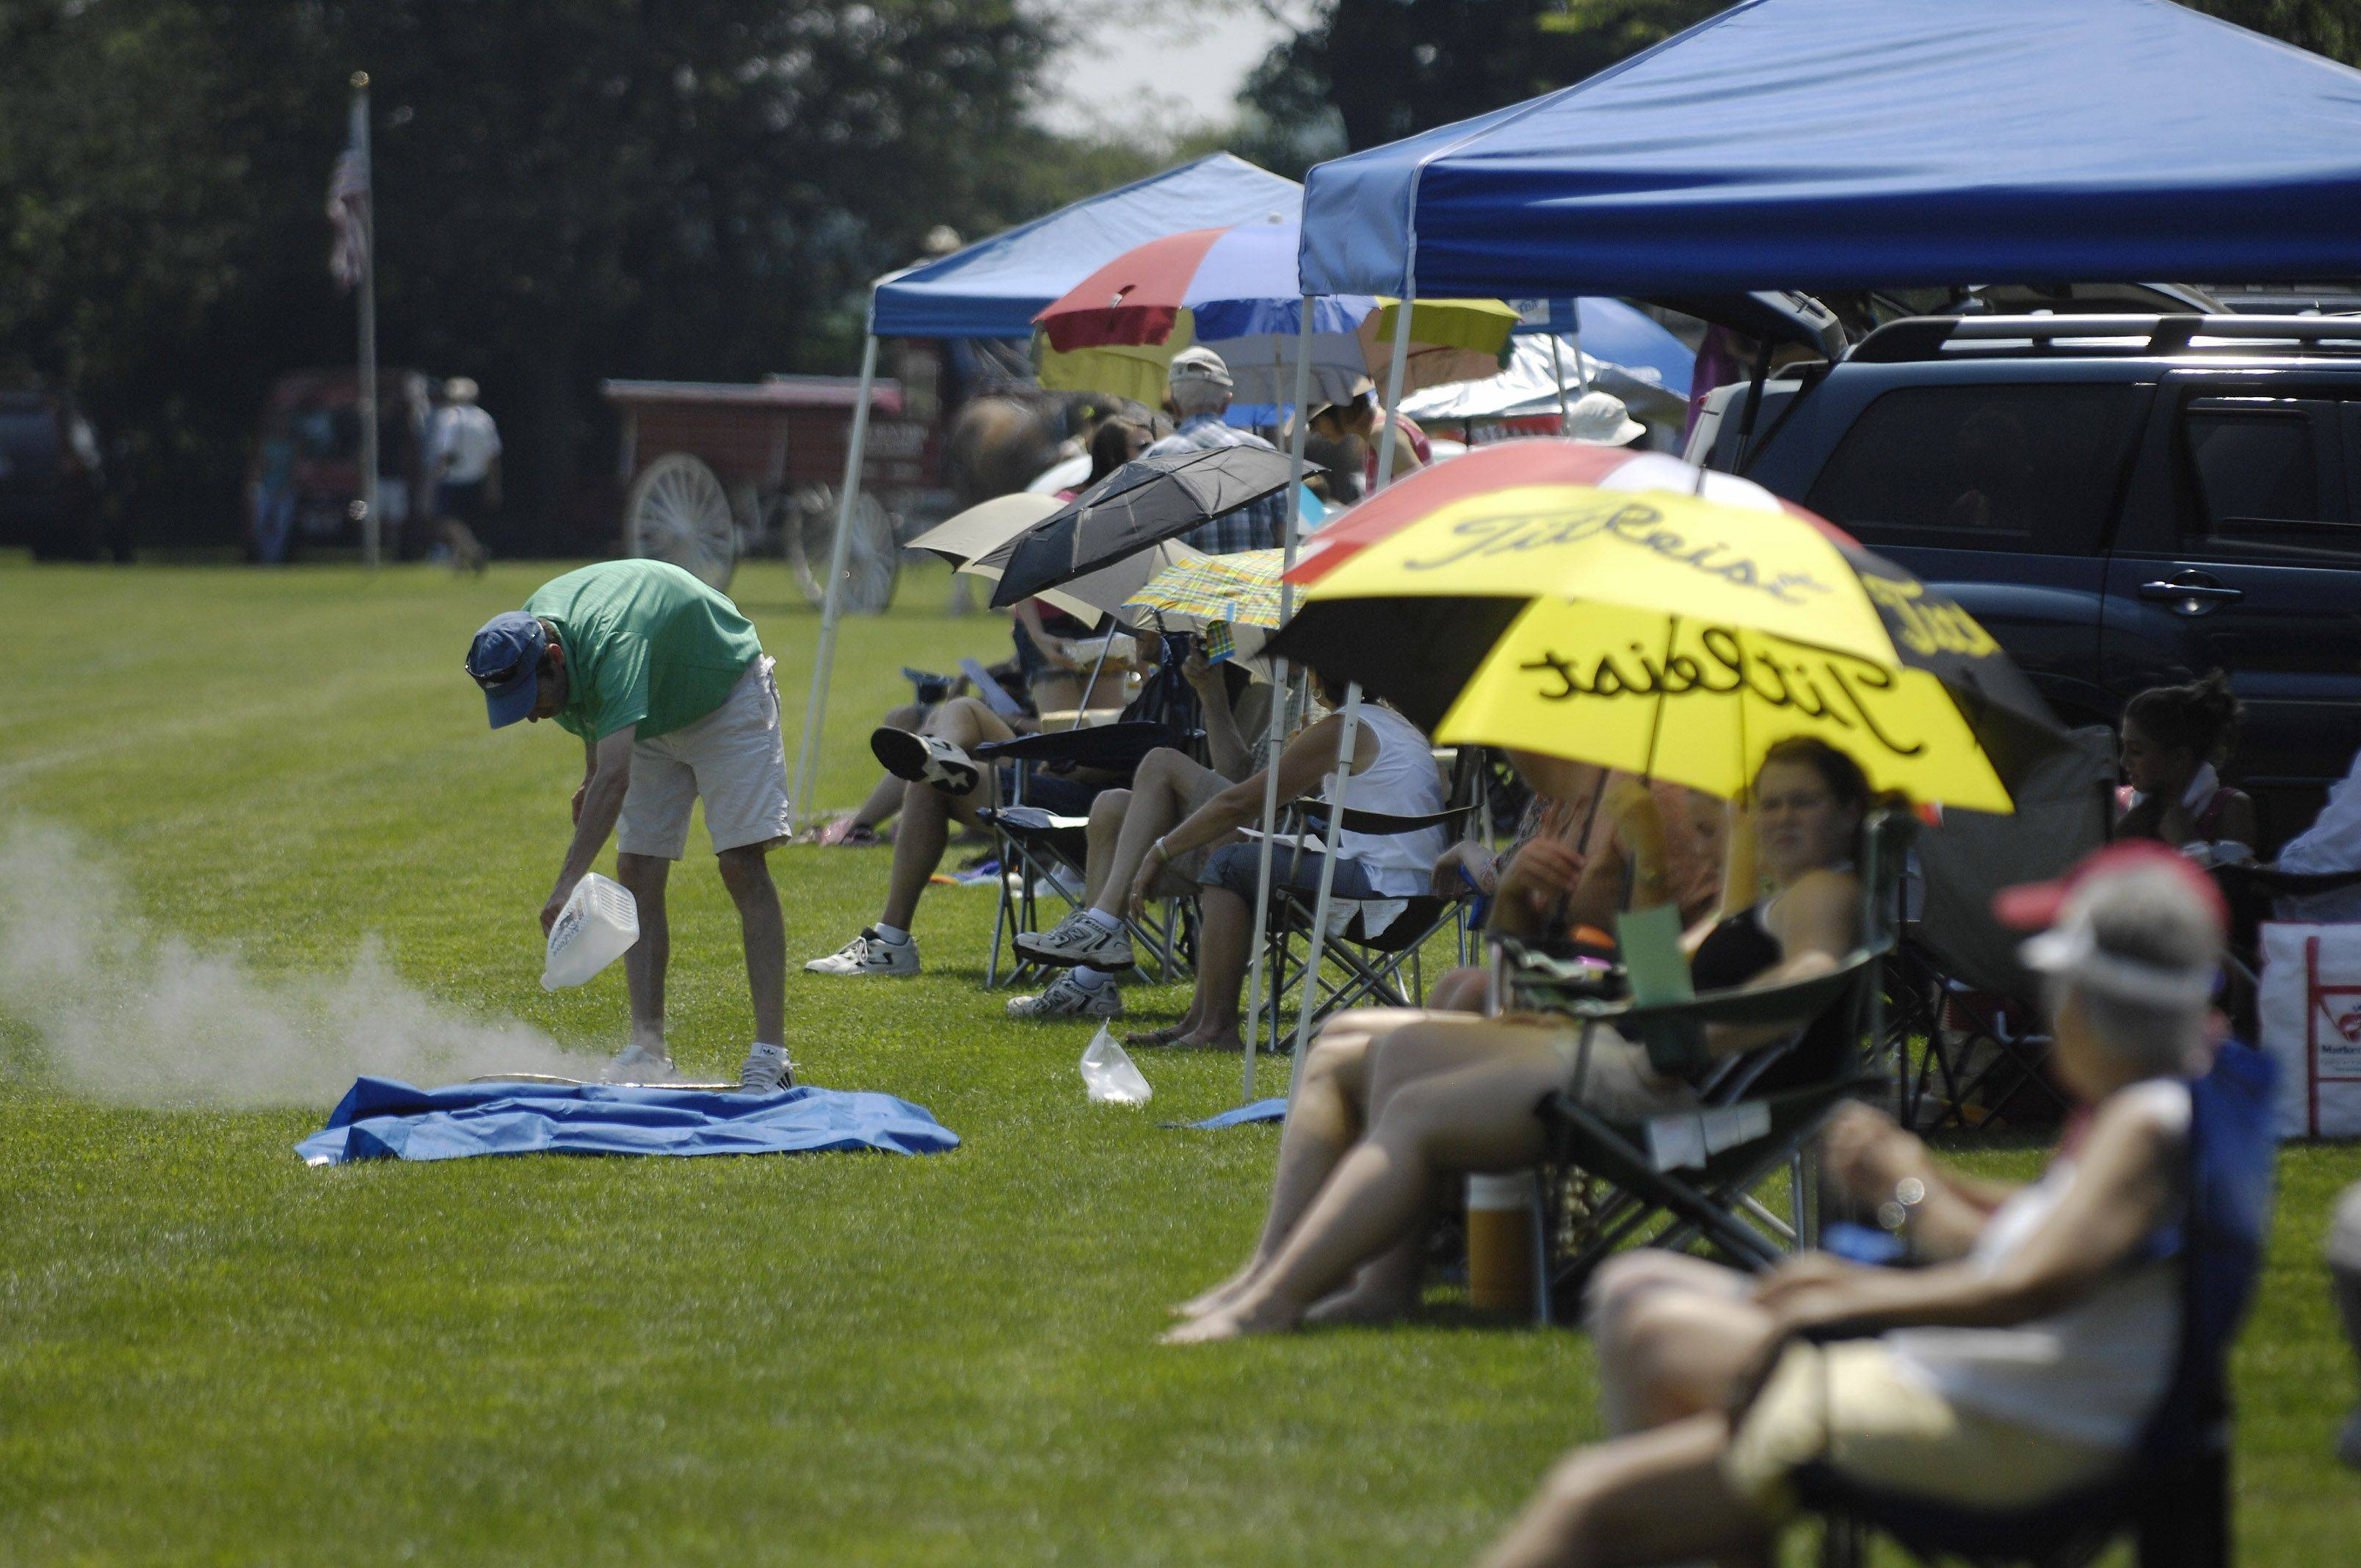 Expected heat wave brings calls for common sense